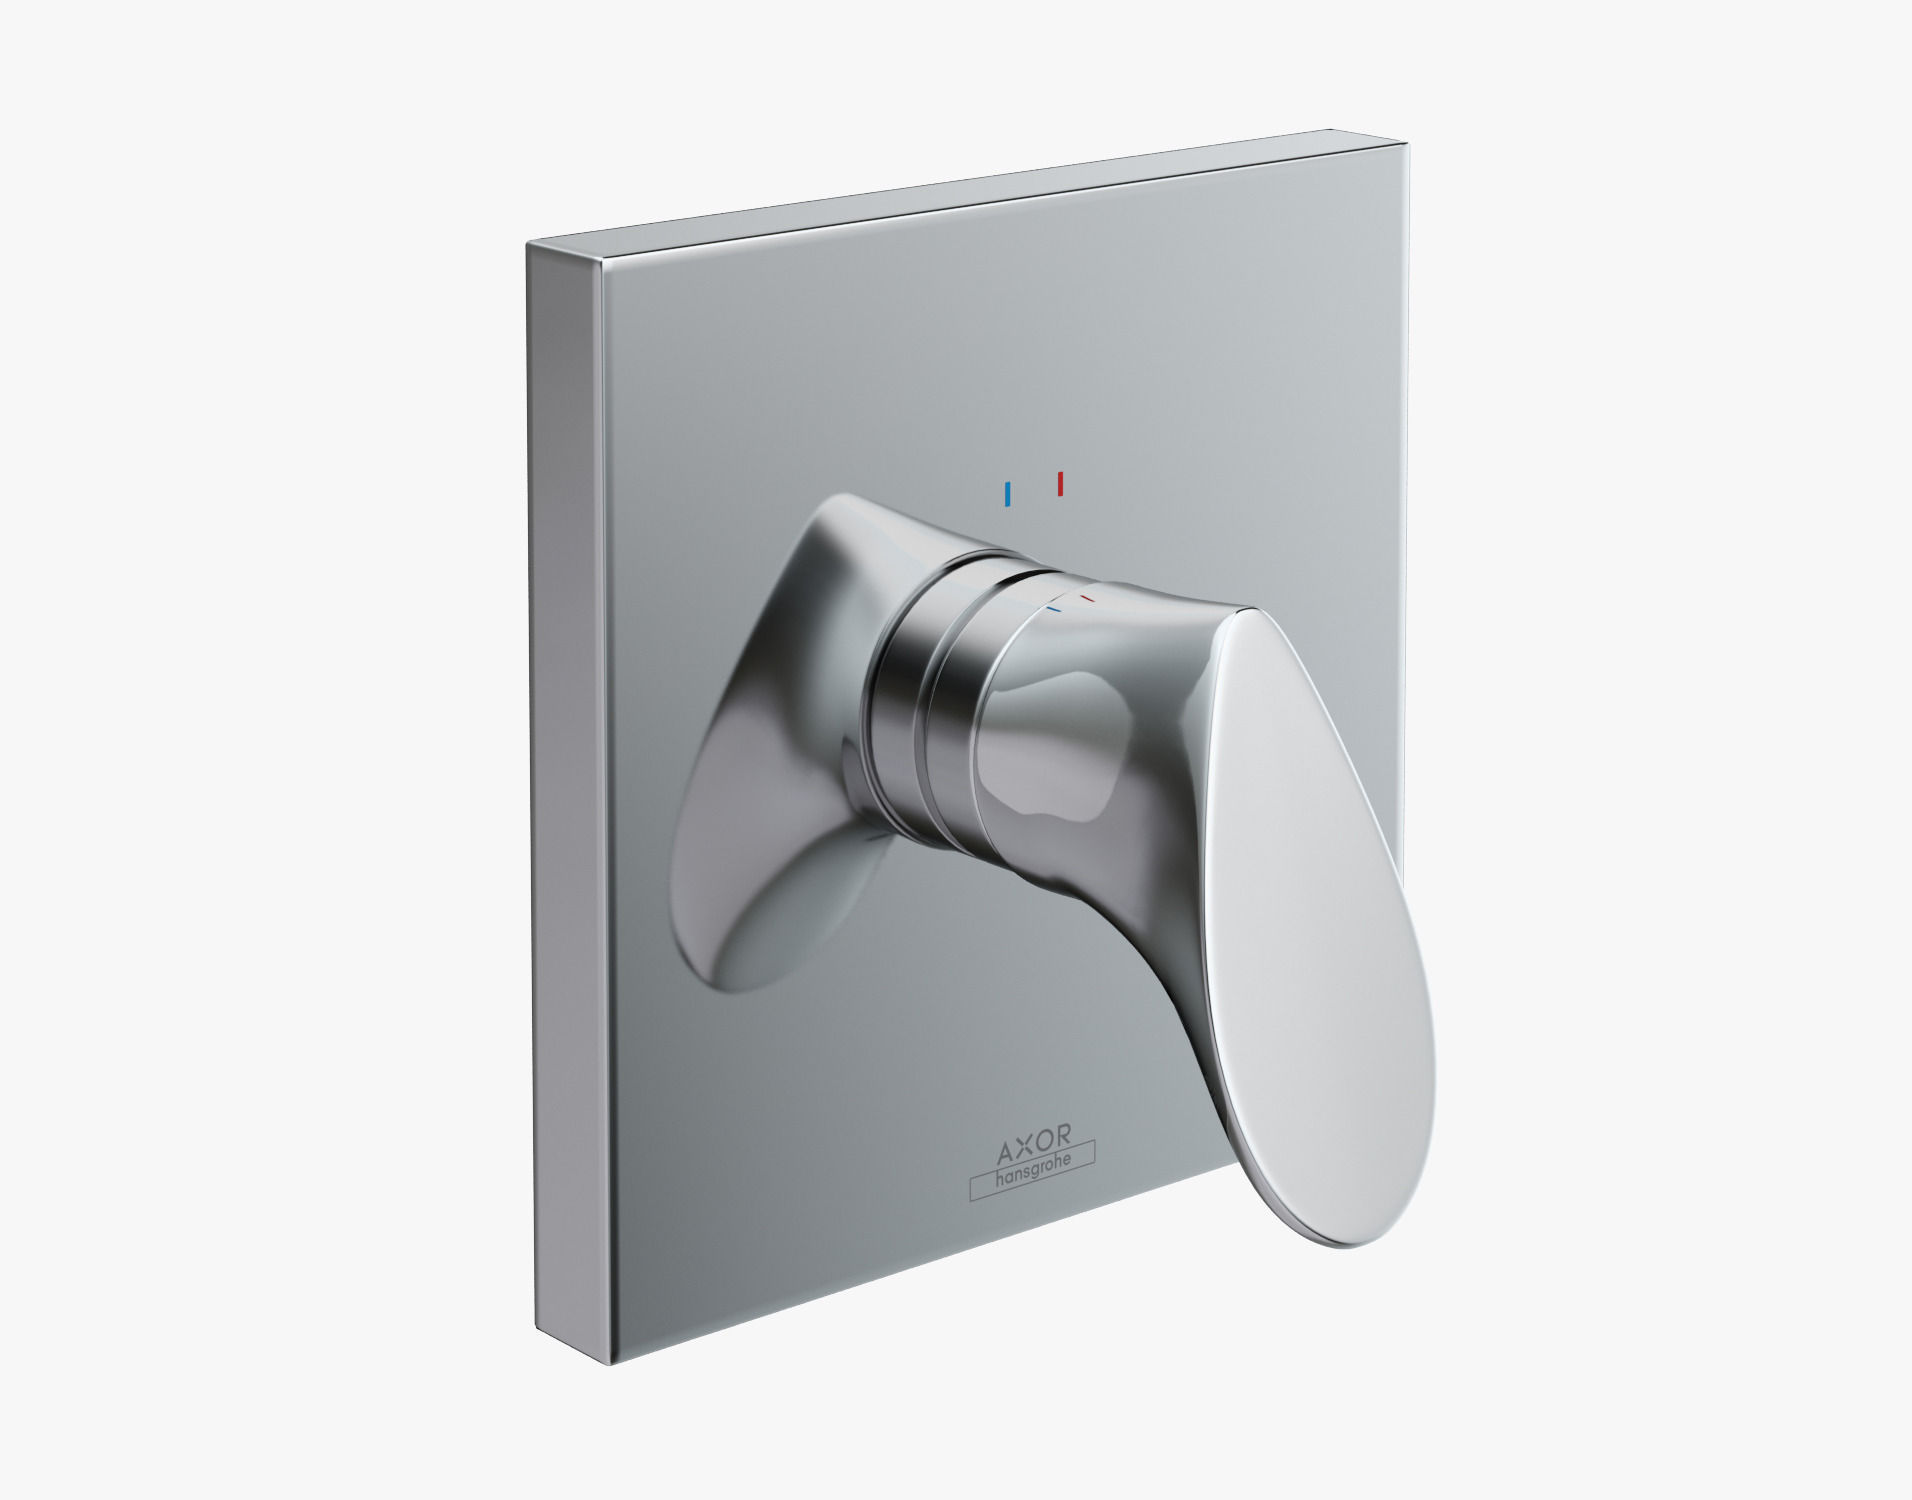 architectural Hansgrohe Axor Starck Organic 3D model